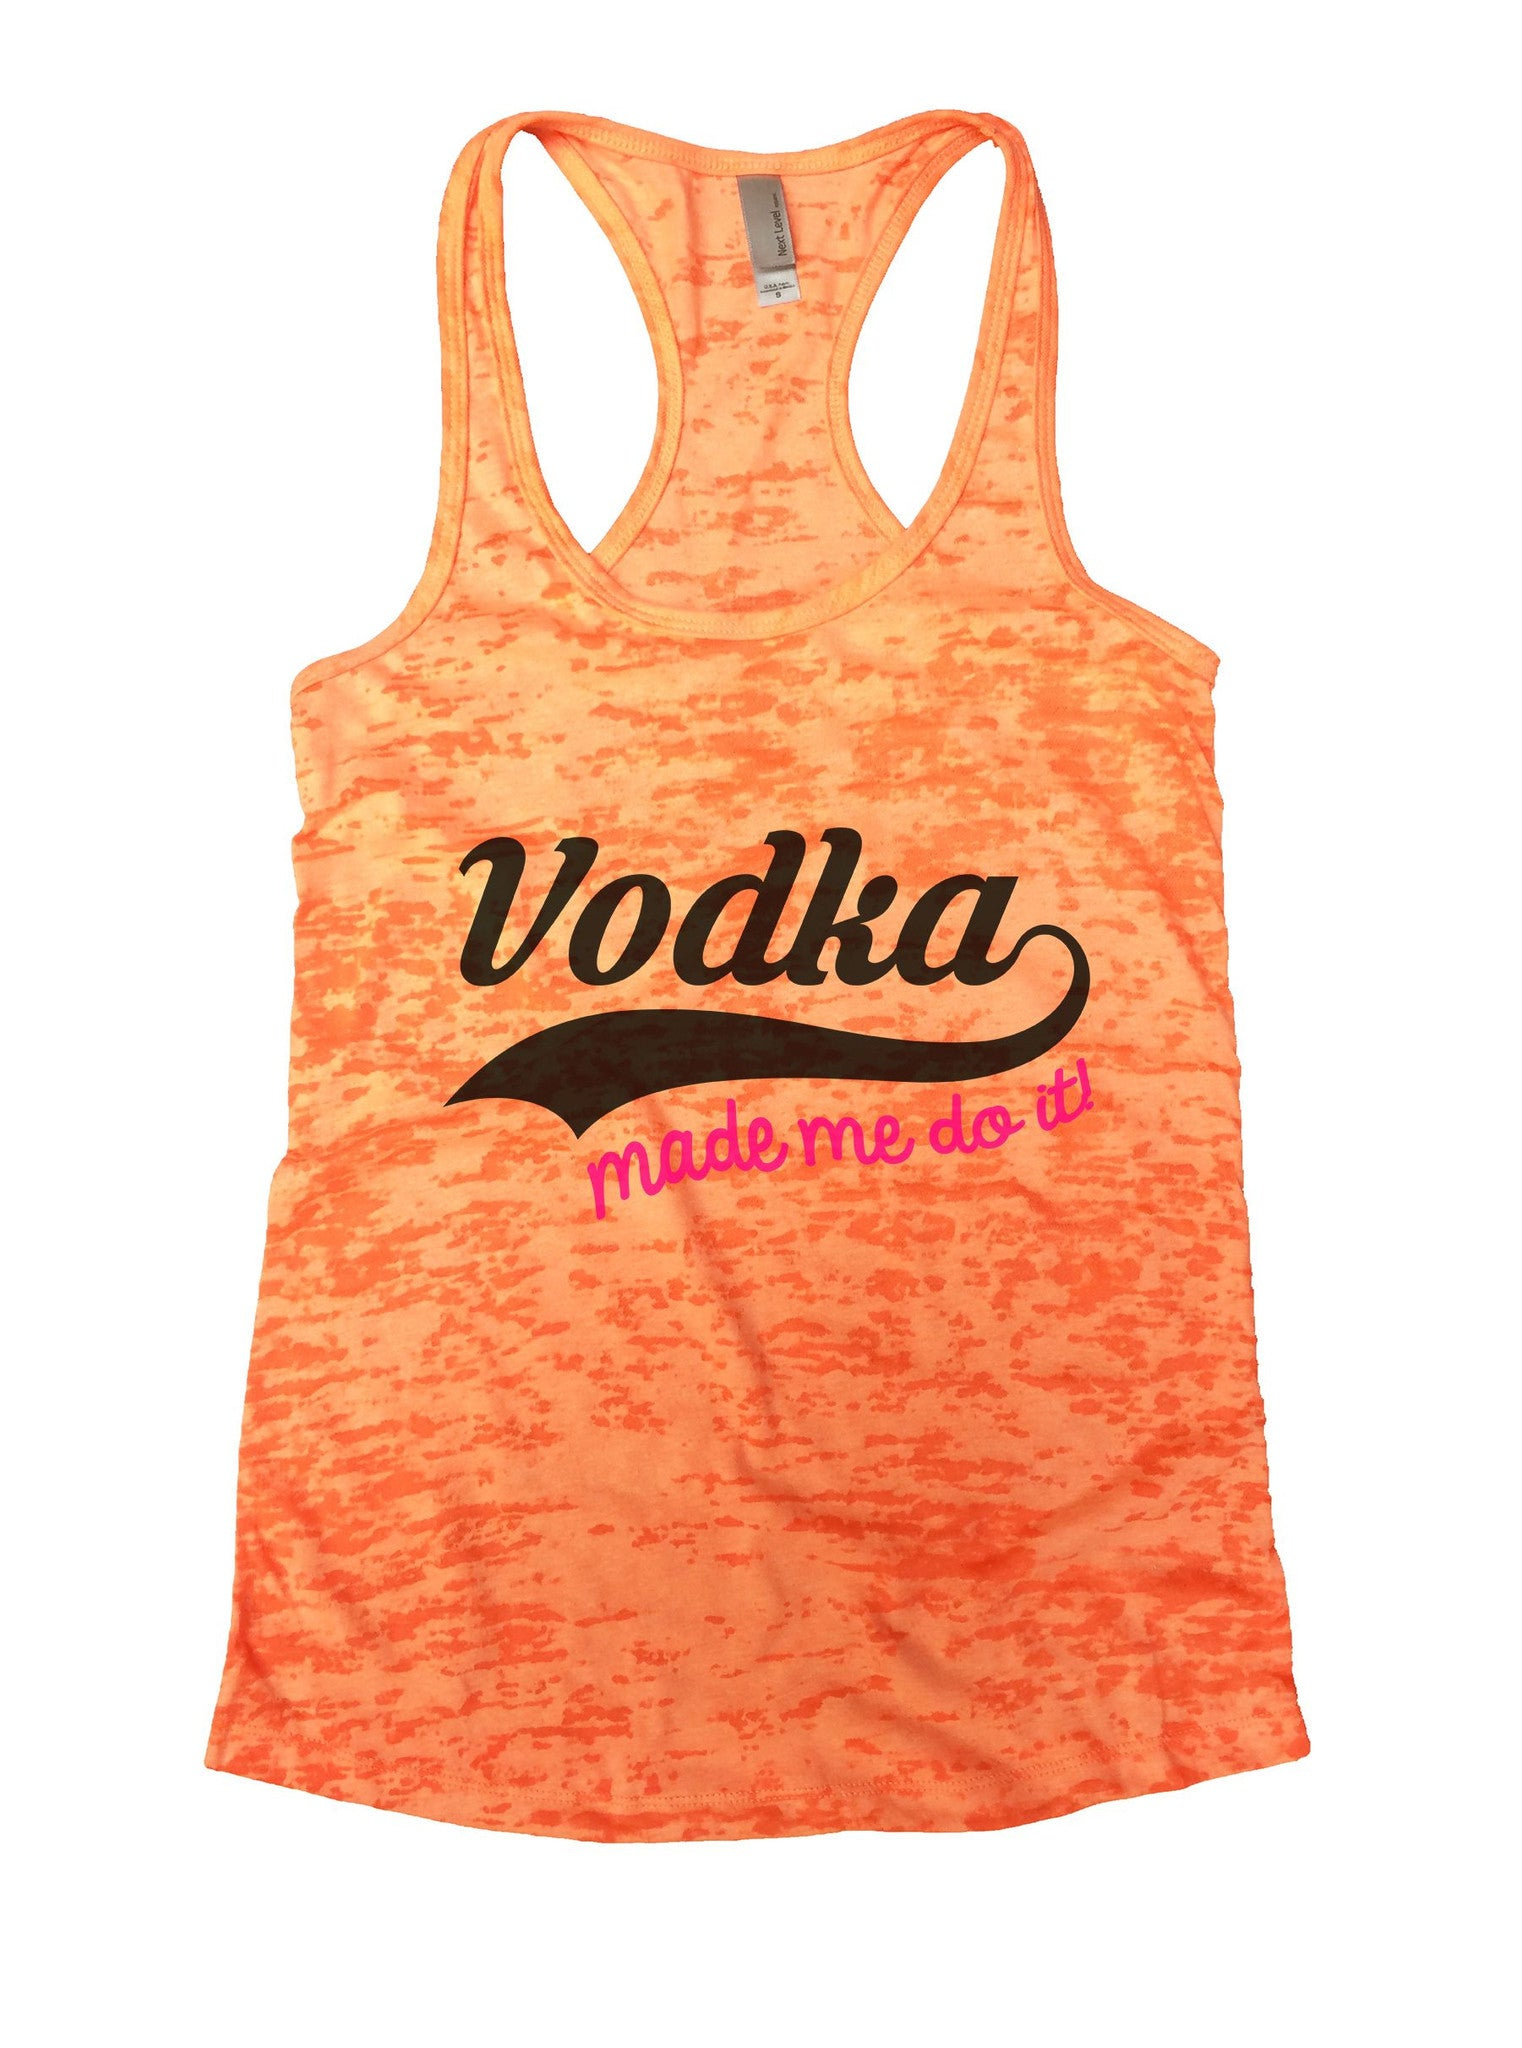 Vodka Made Me Do It! Burnout Tank Top By BurnoutTankTops.com - 1083 - Funny Shirts Tank Tops Burnouts and Triblends  - 3